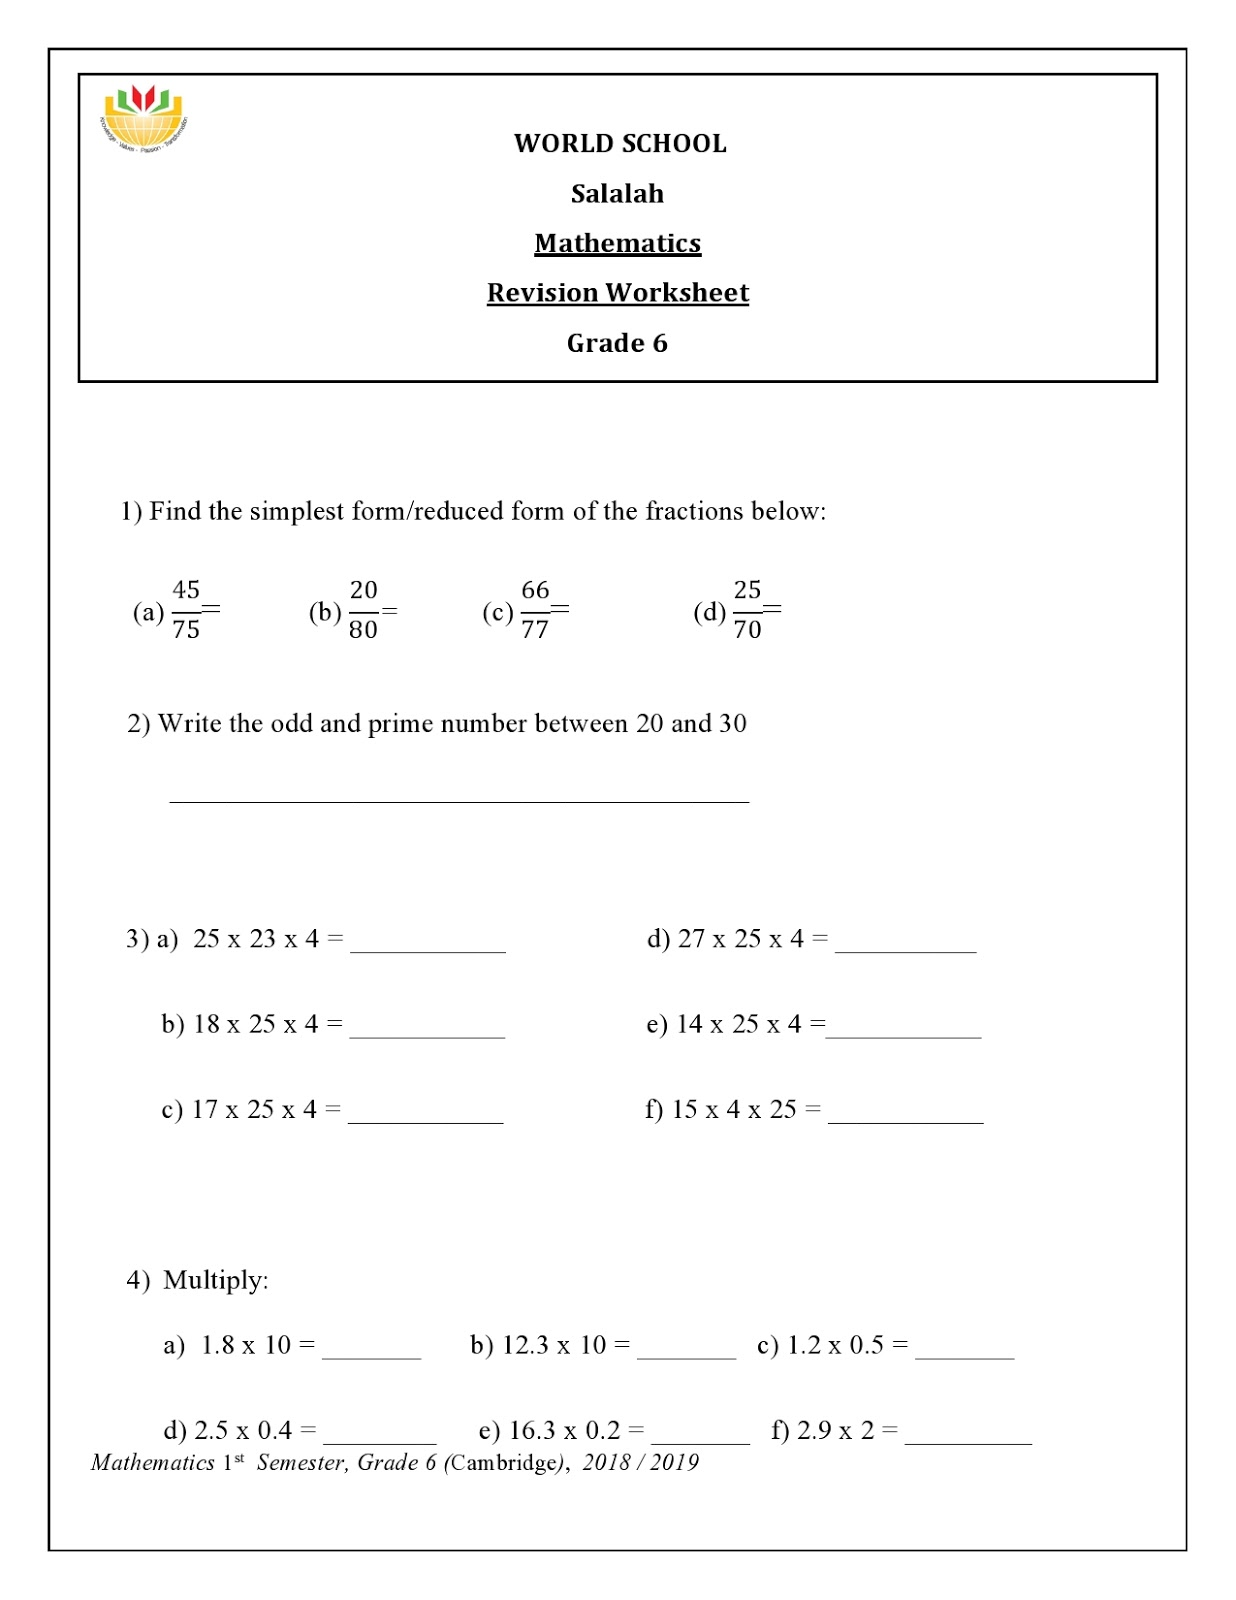 hight resolution of WORLD SCHOOL OMAN: Math Revision for Grade 6 as on 03-01-2019